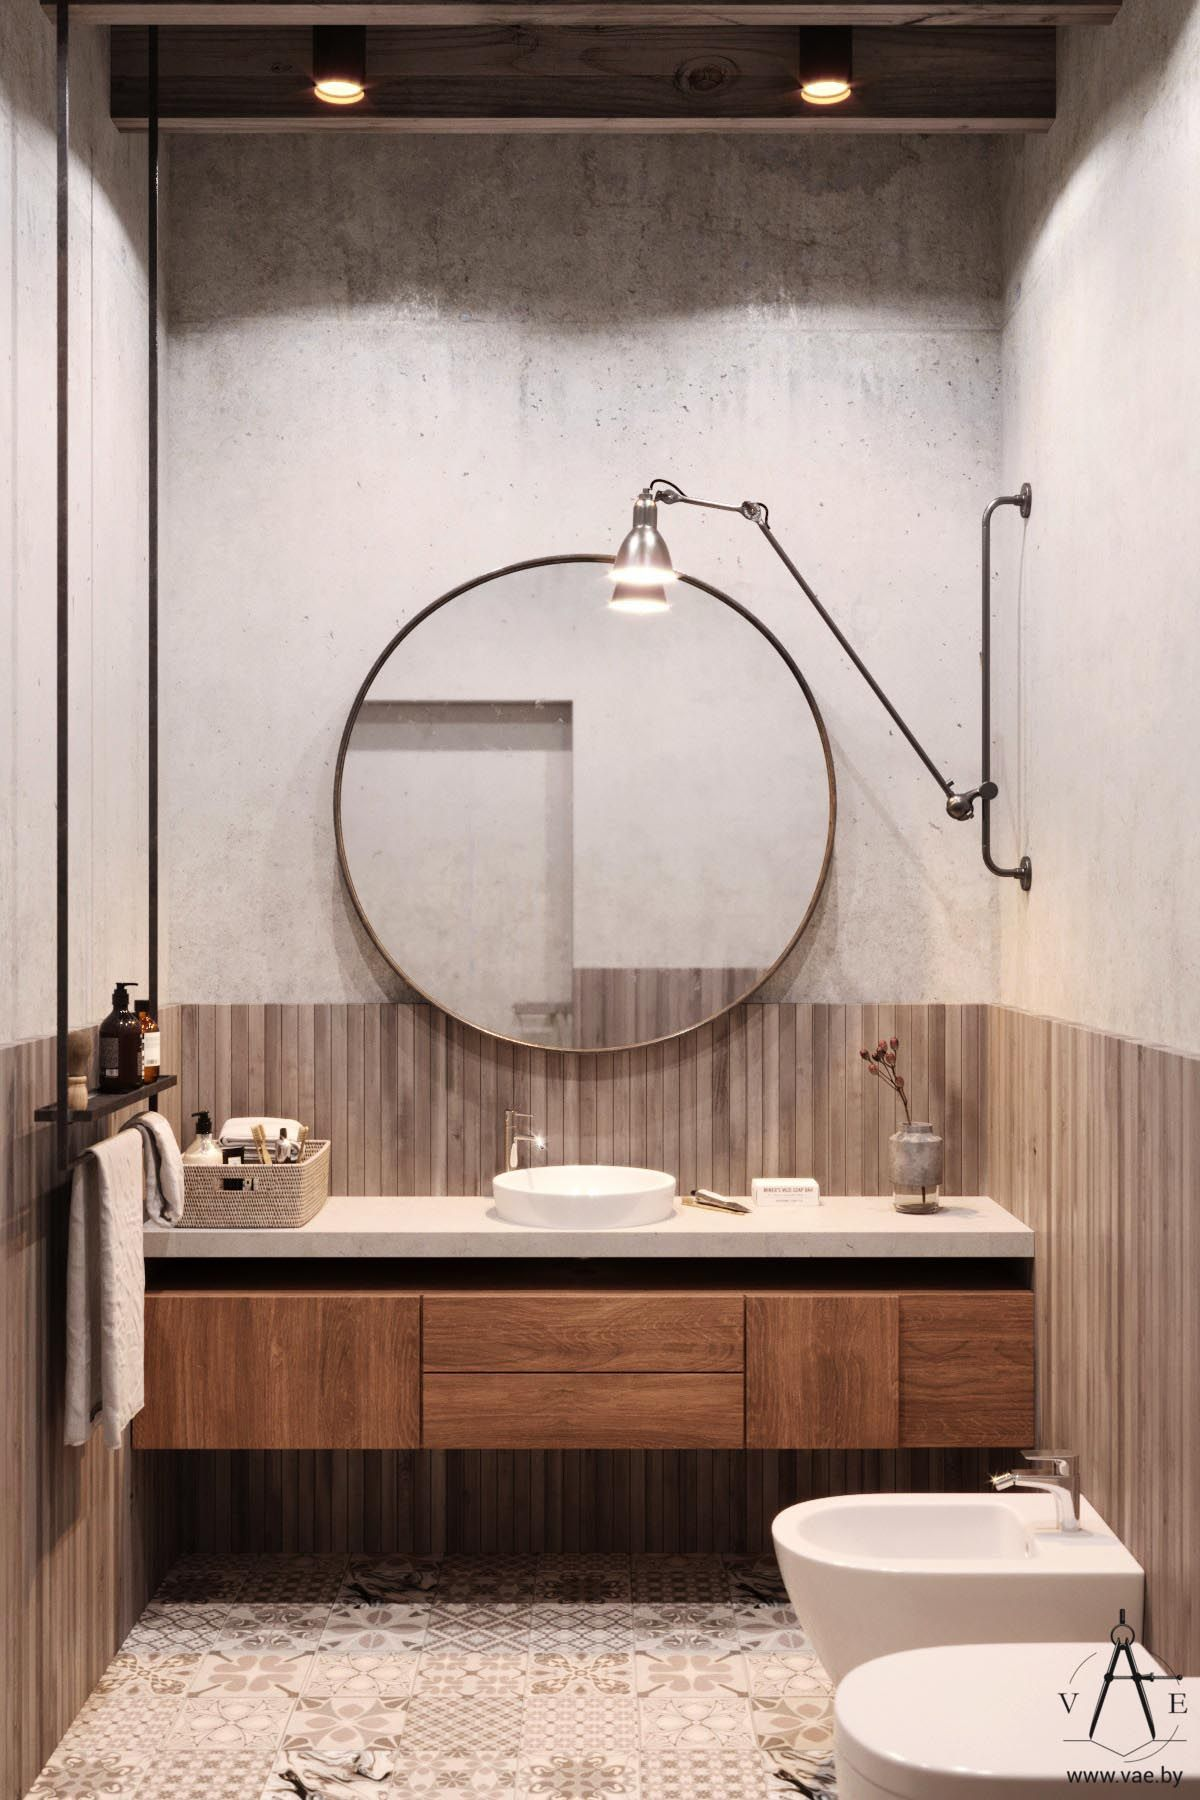 Industrial Style Bathroom Mirror Warm Industrial Style House With Layout 室 衛浴